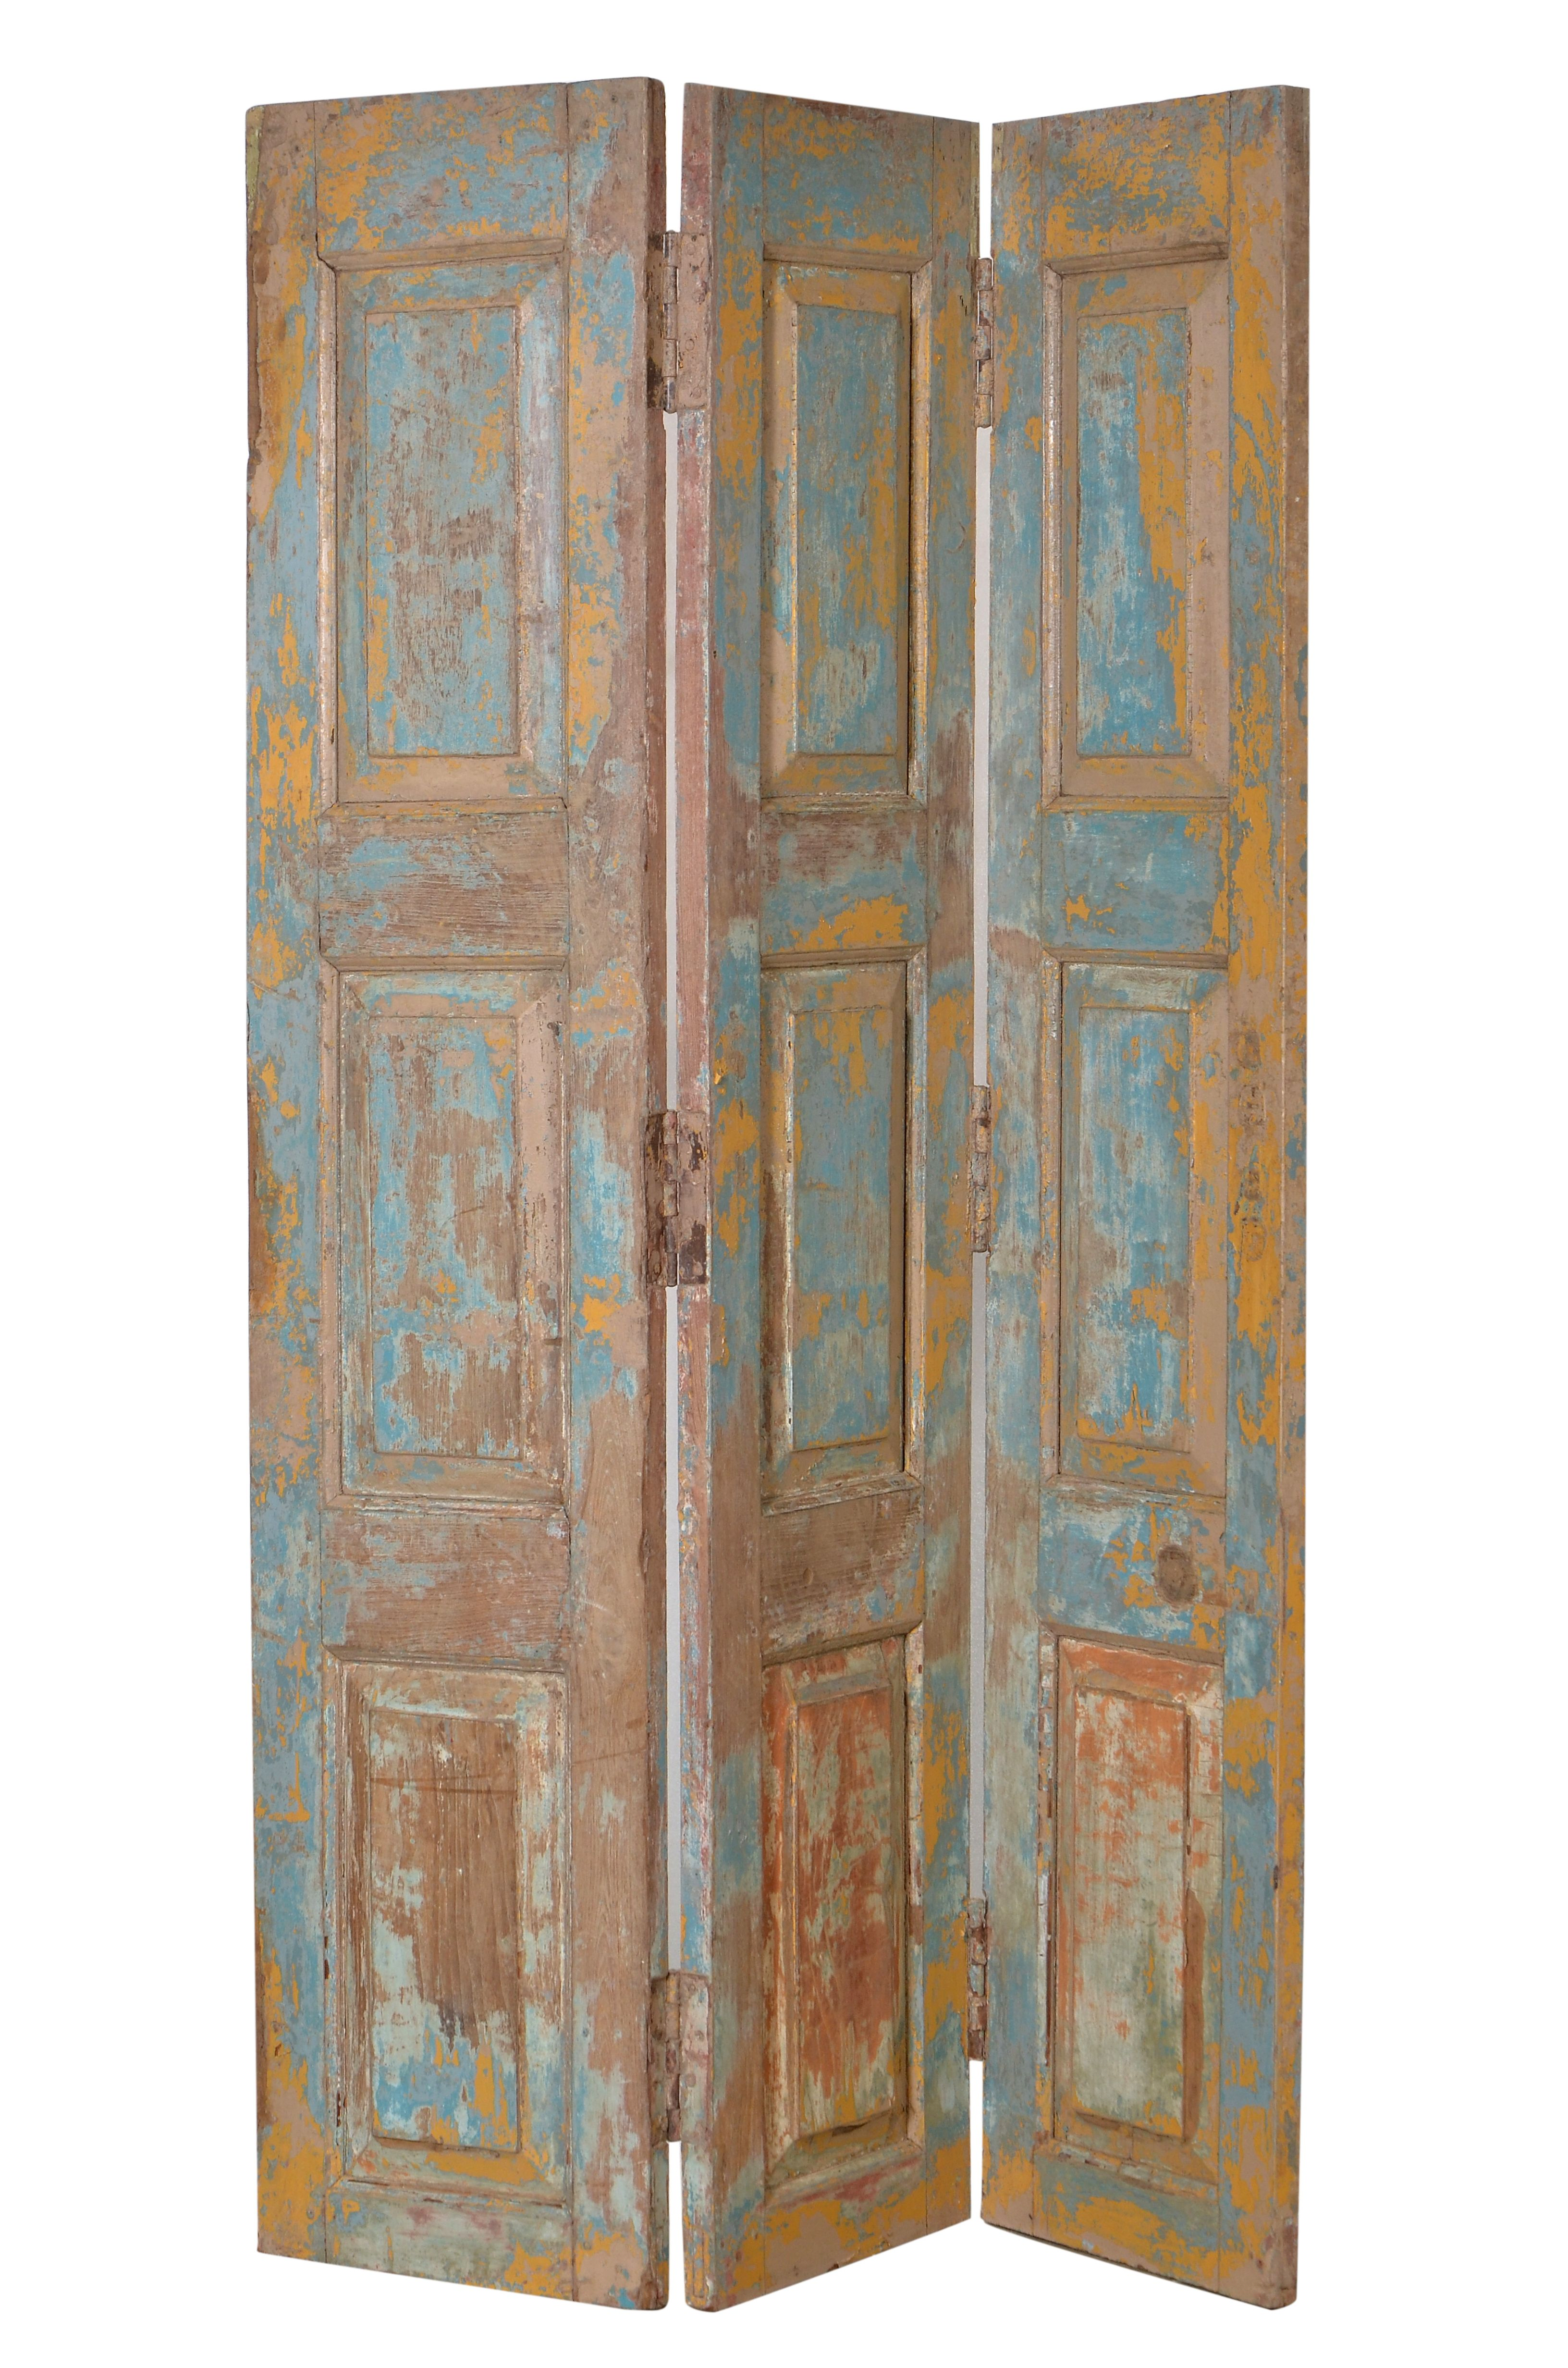 Original Indian room dividers Find more great Indian antiques